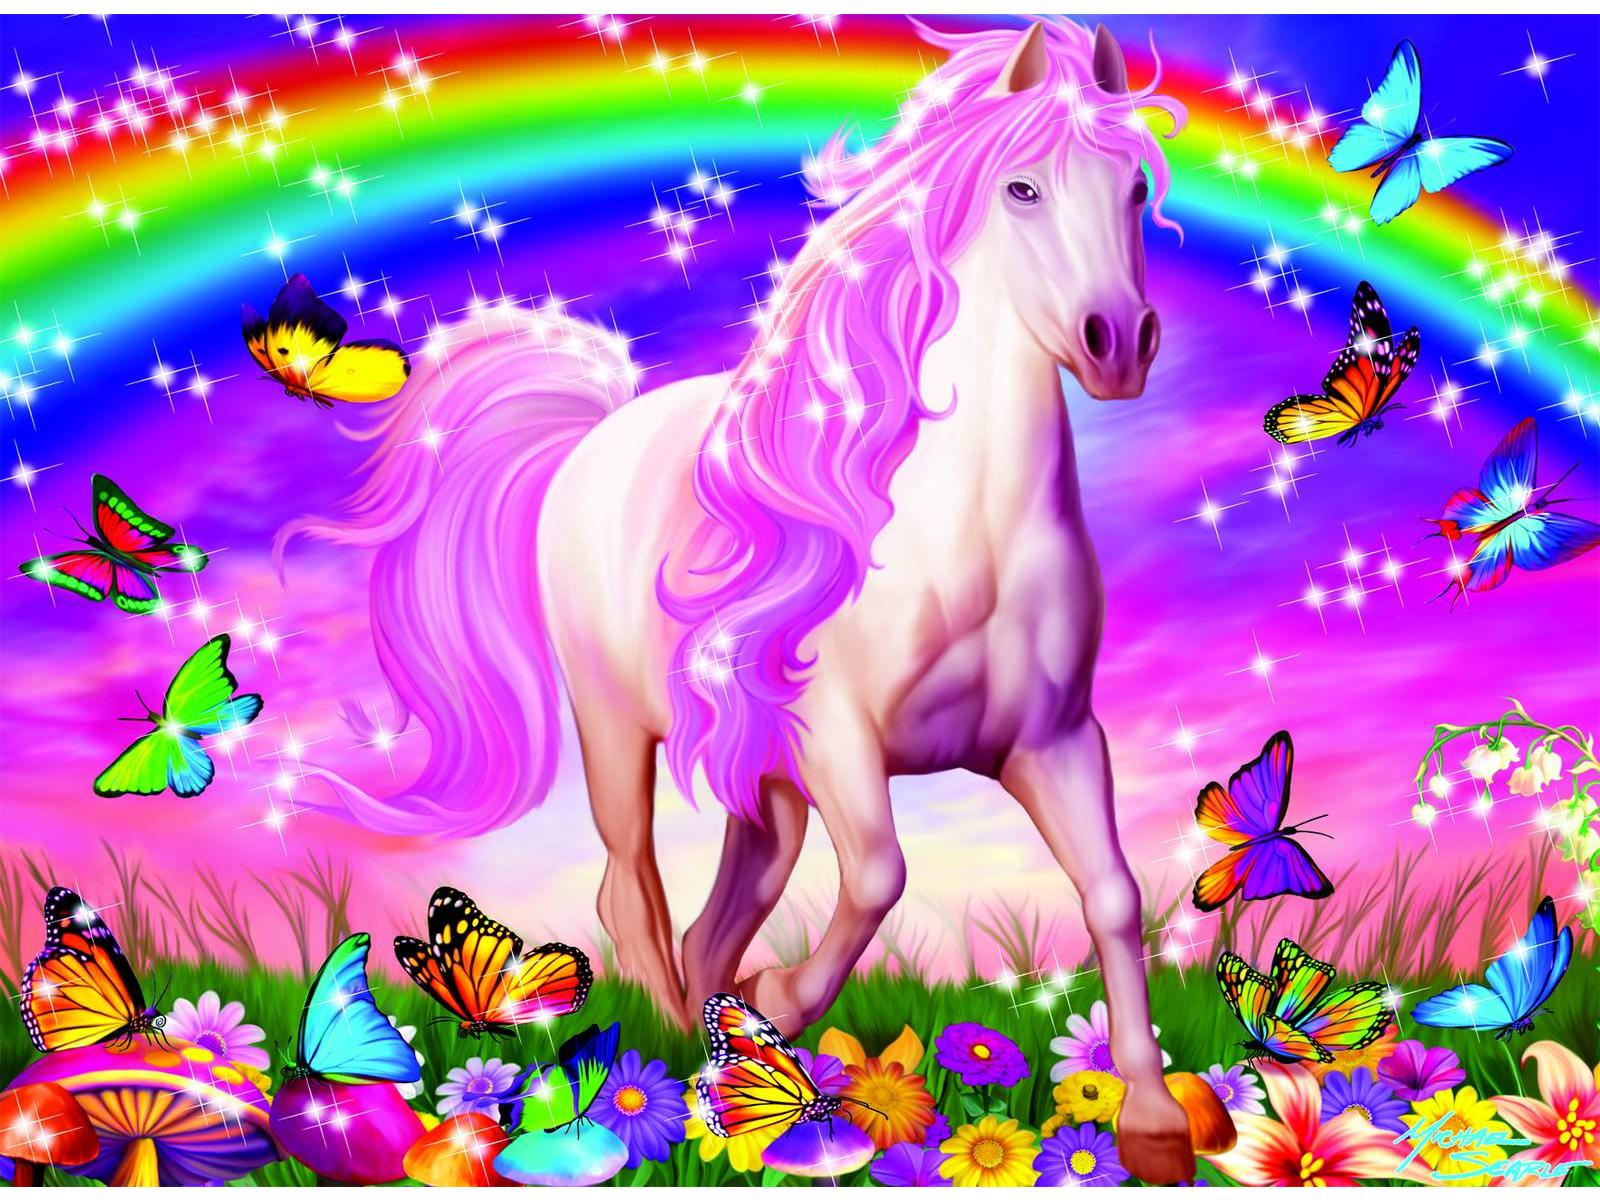 Puzzle 100 pi  232 ces XXL paillet  233 s  R  234 ve de cheval Ravensburger  R  233 f    Unicorns And Rainbows Wallpaper